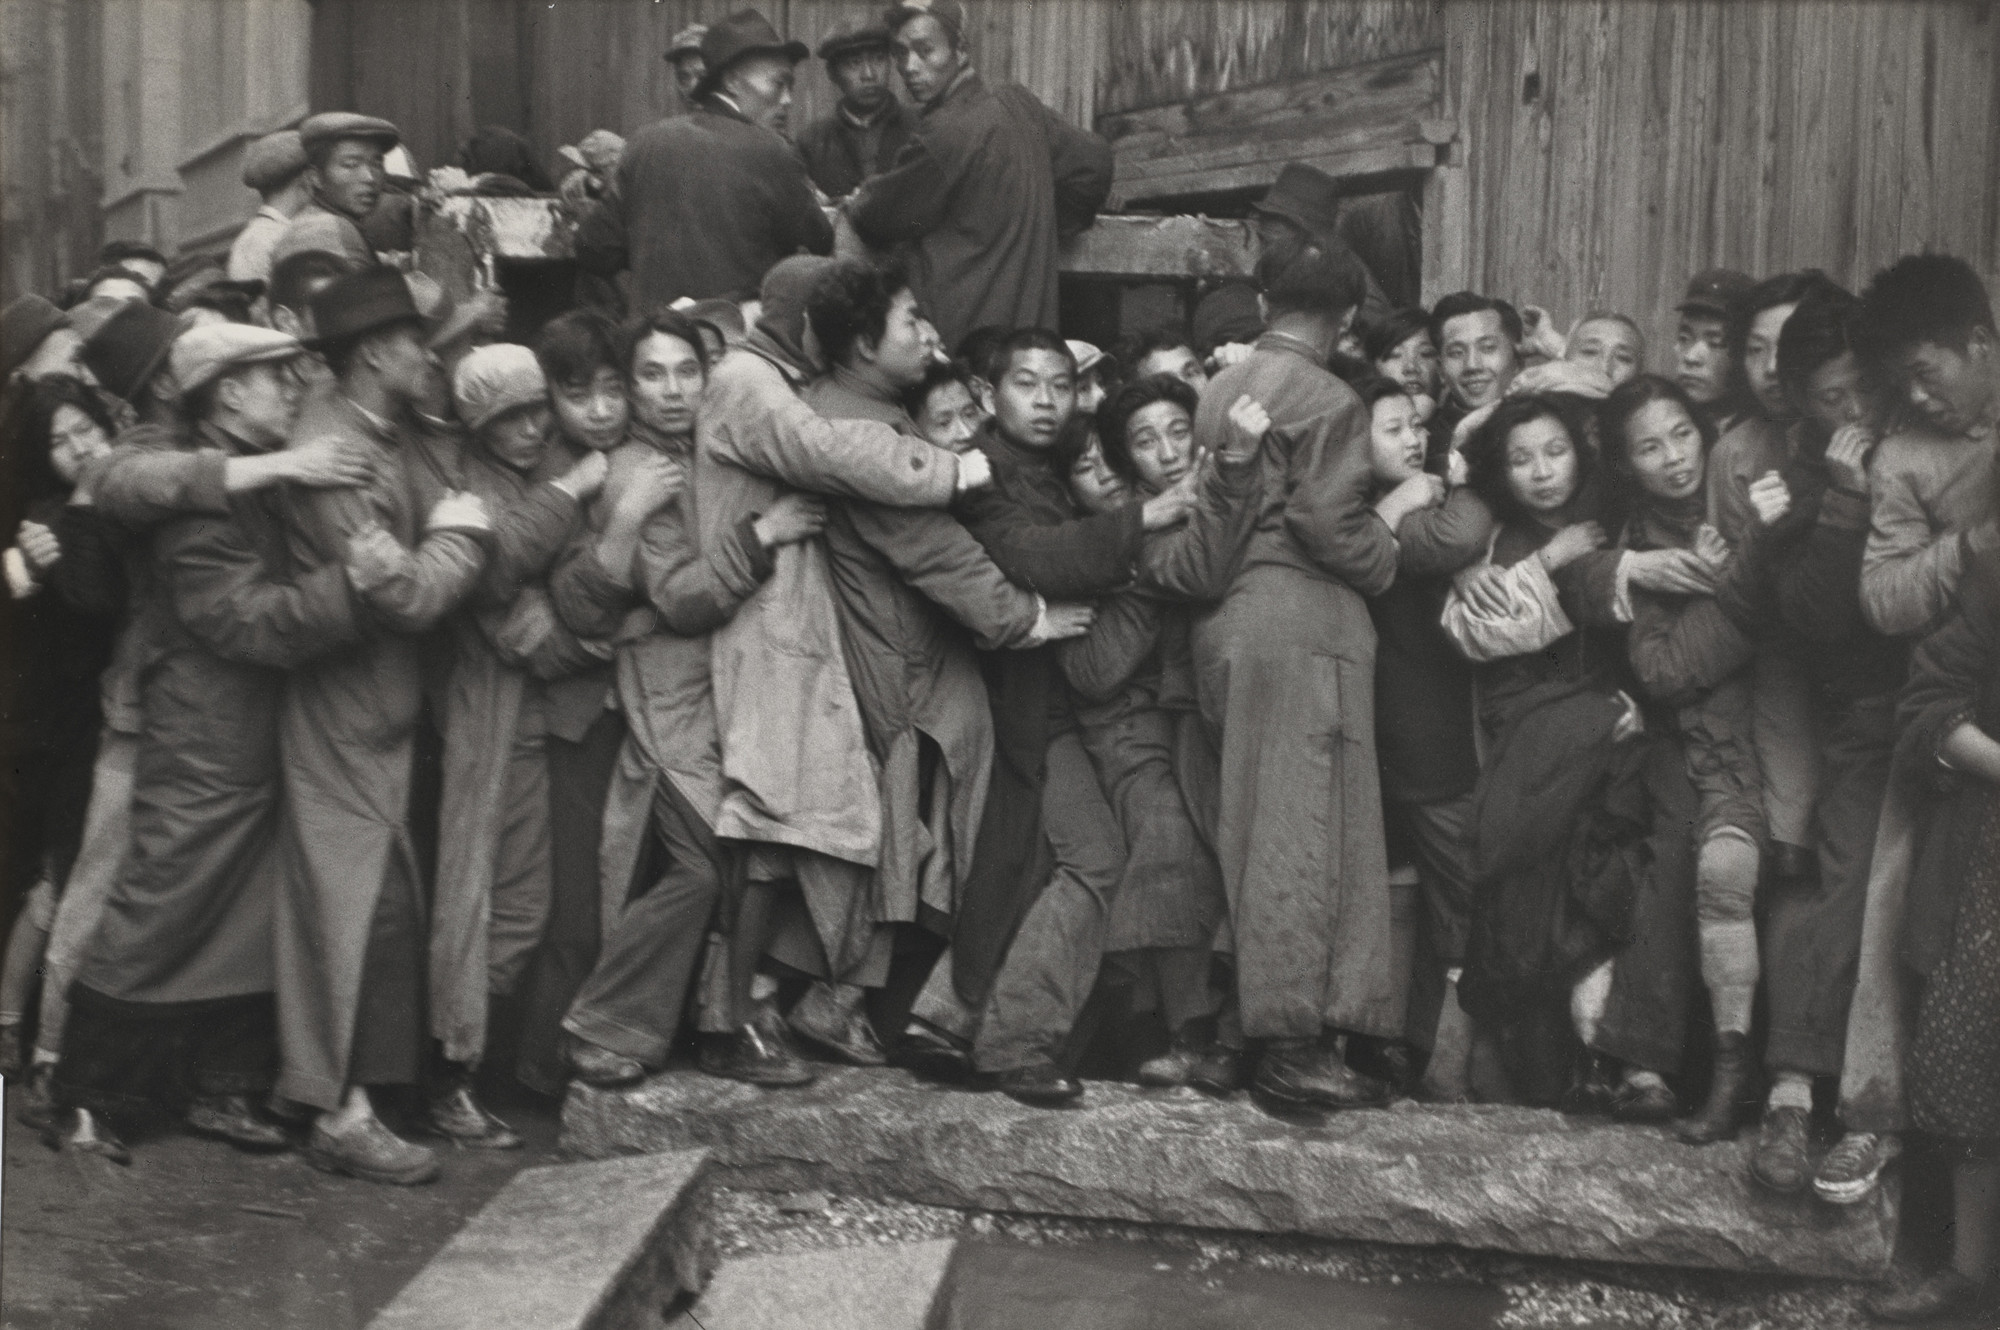 Henri Cartier-Bresson. Shanghai. December 1948